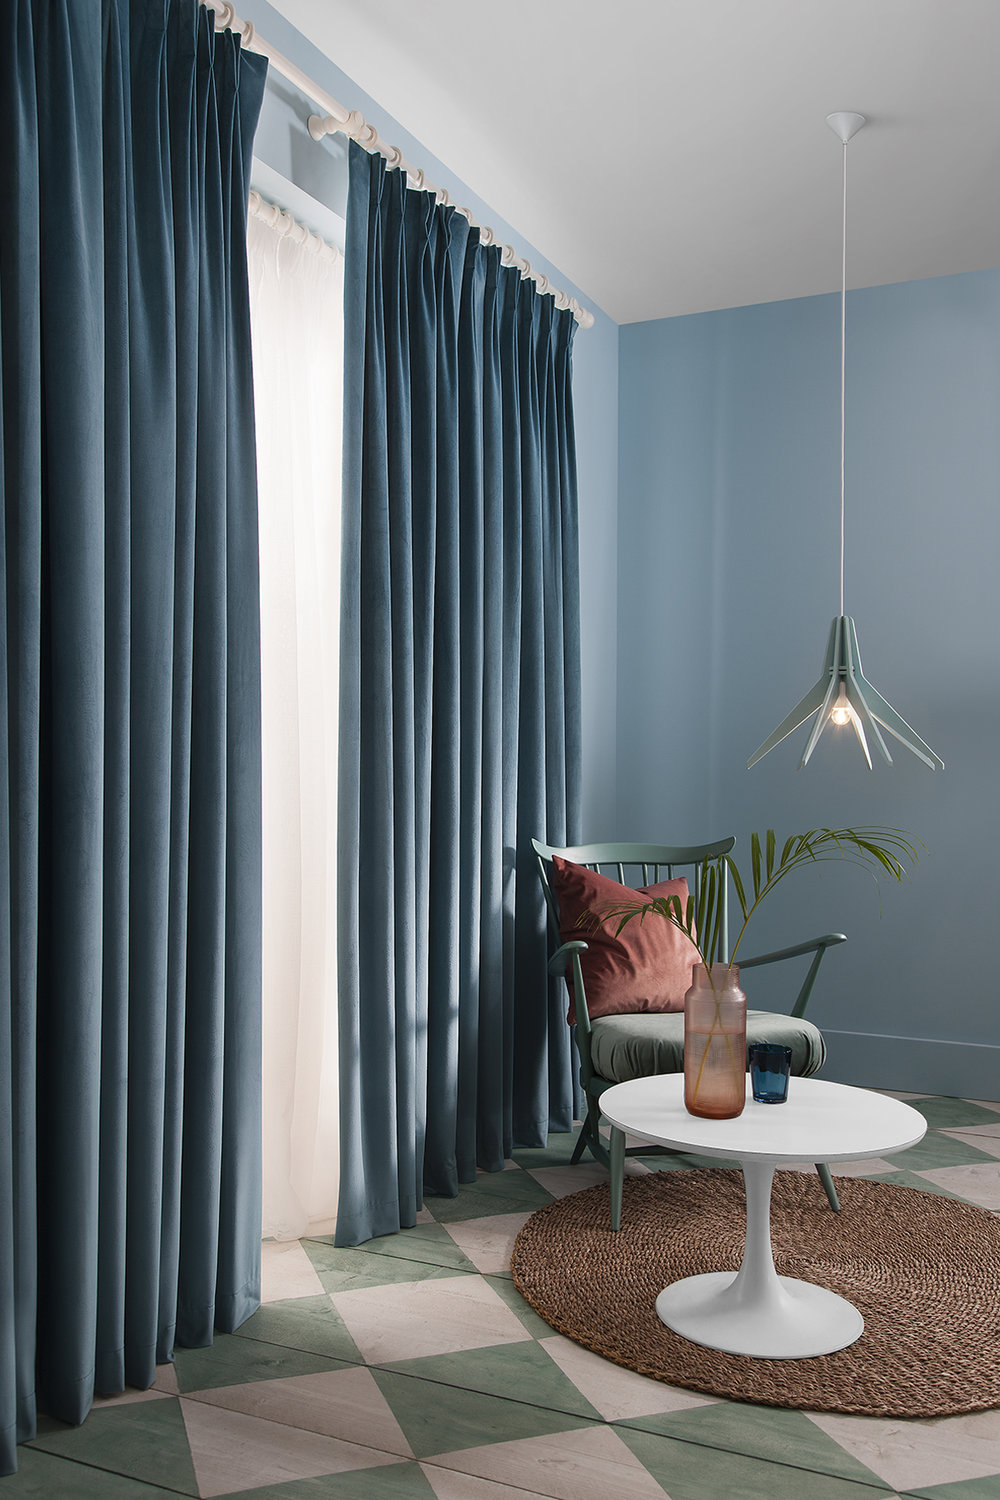 Curtains co Retro Velvet A.jpg